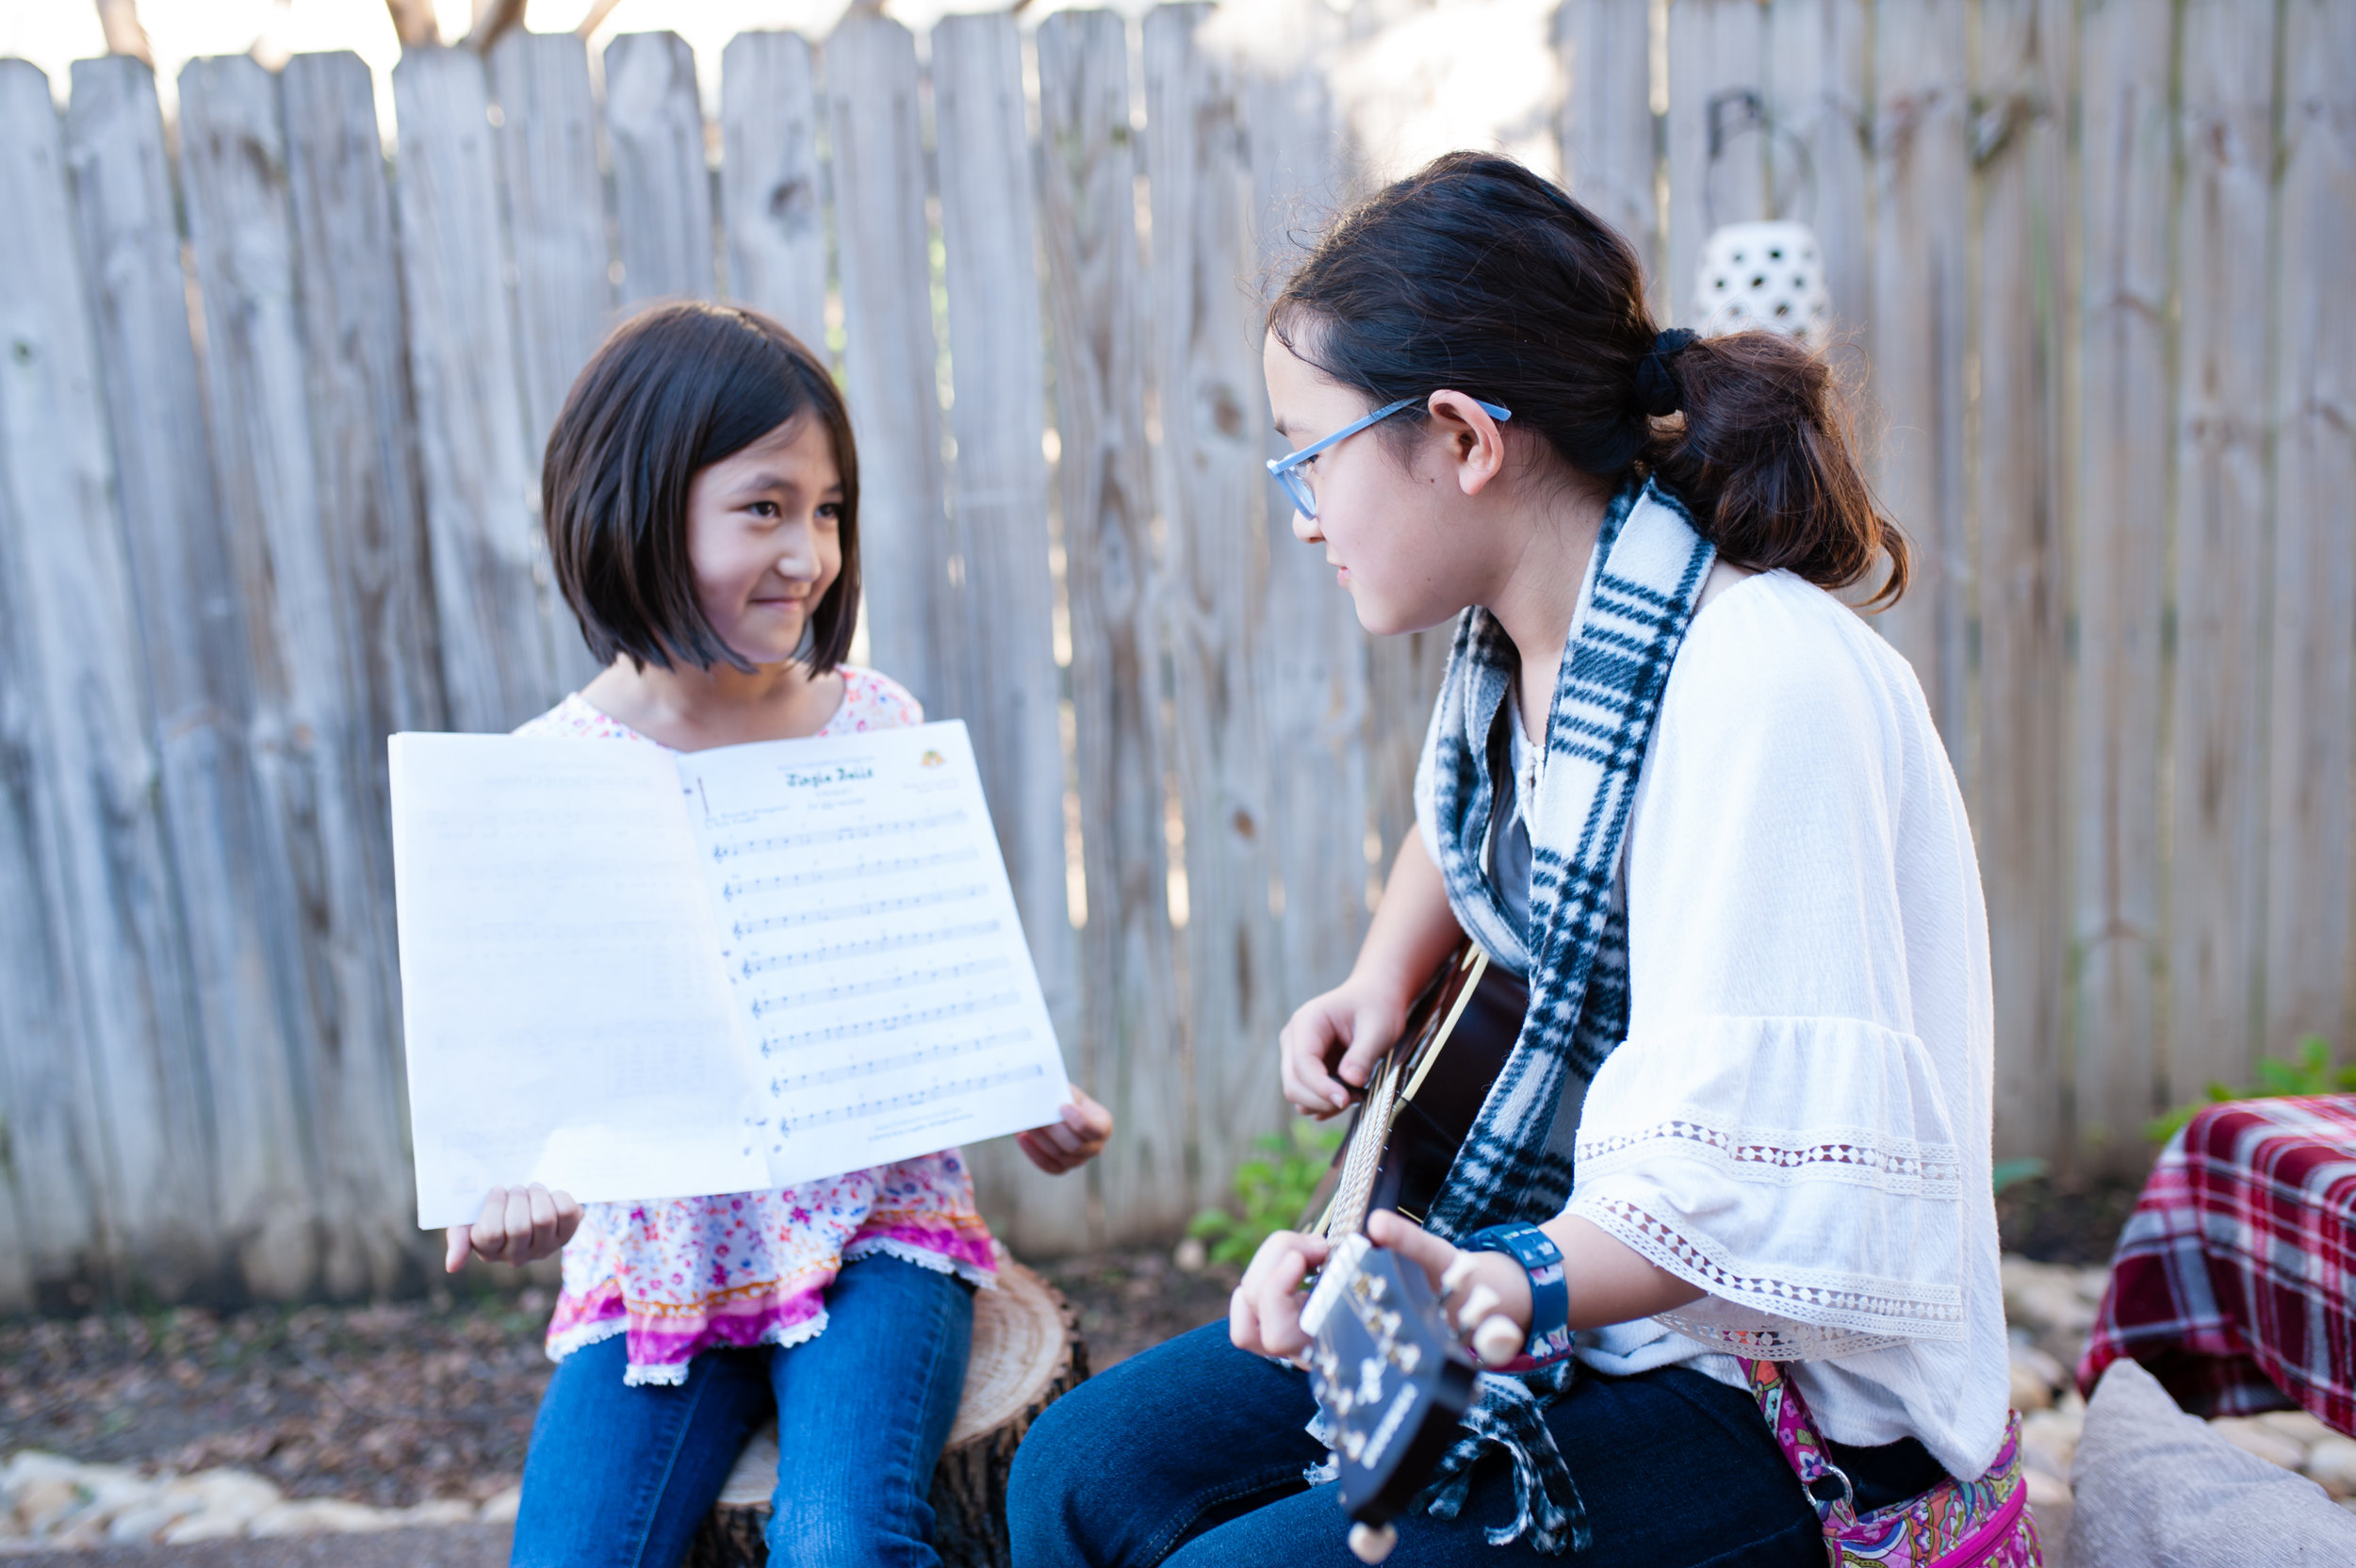 Props such as a guitar can help clients feel more comfortable and at ease.